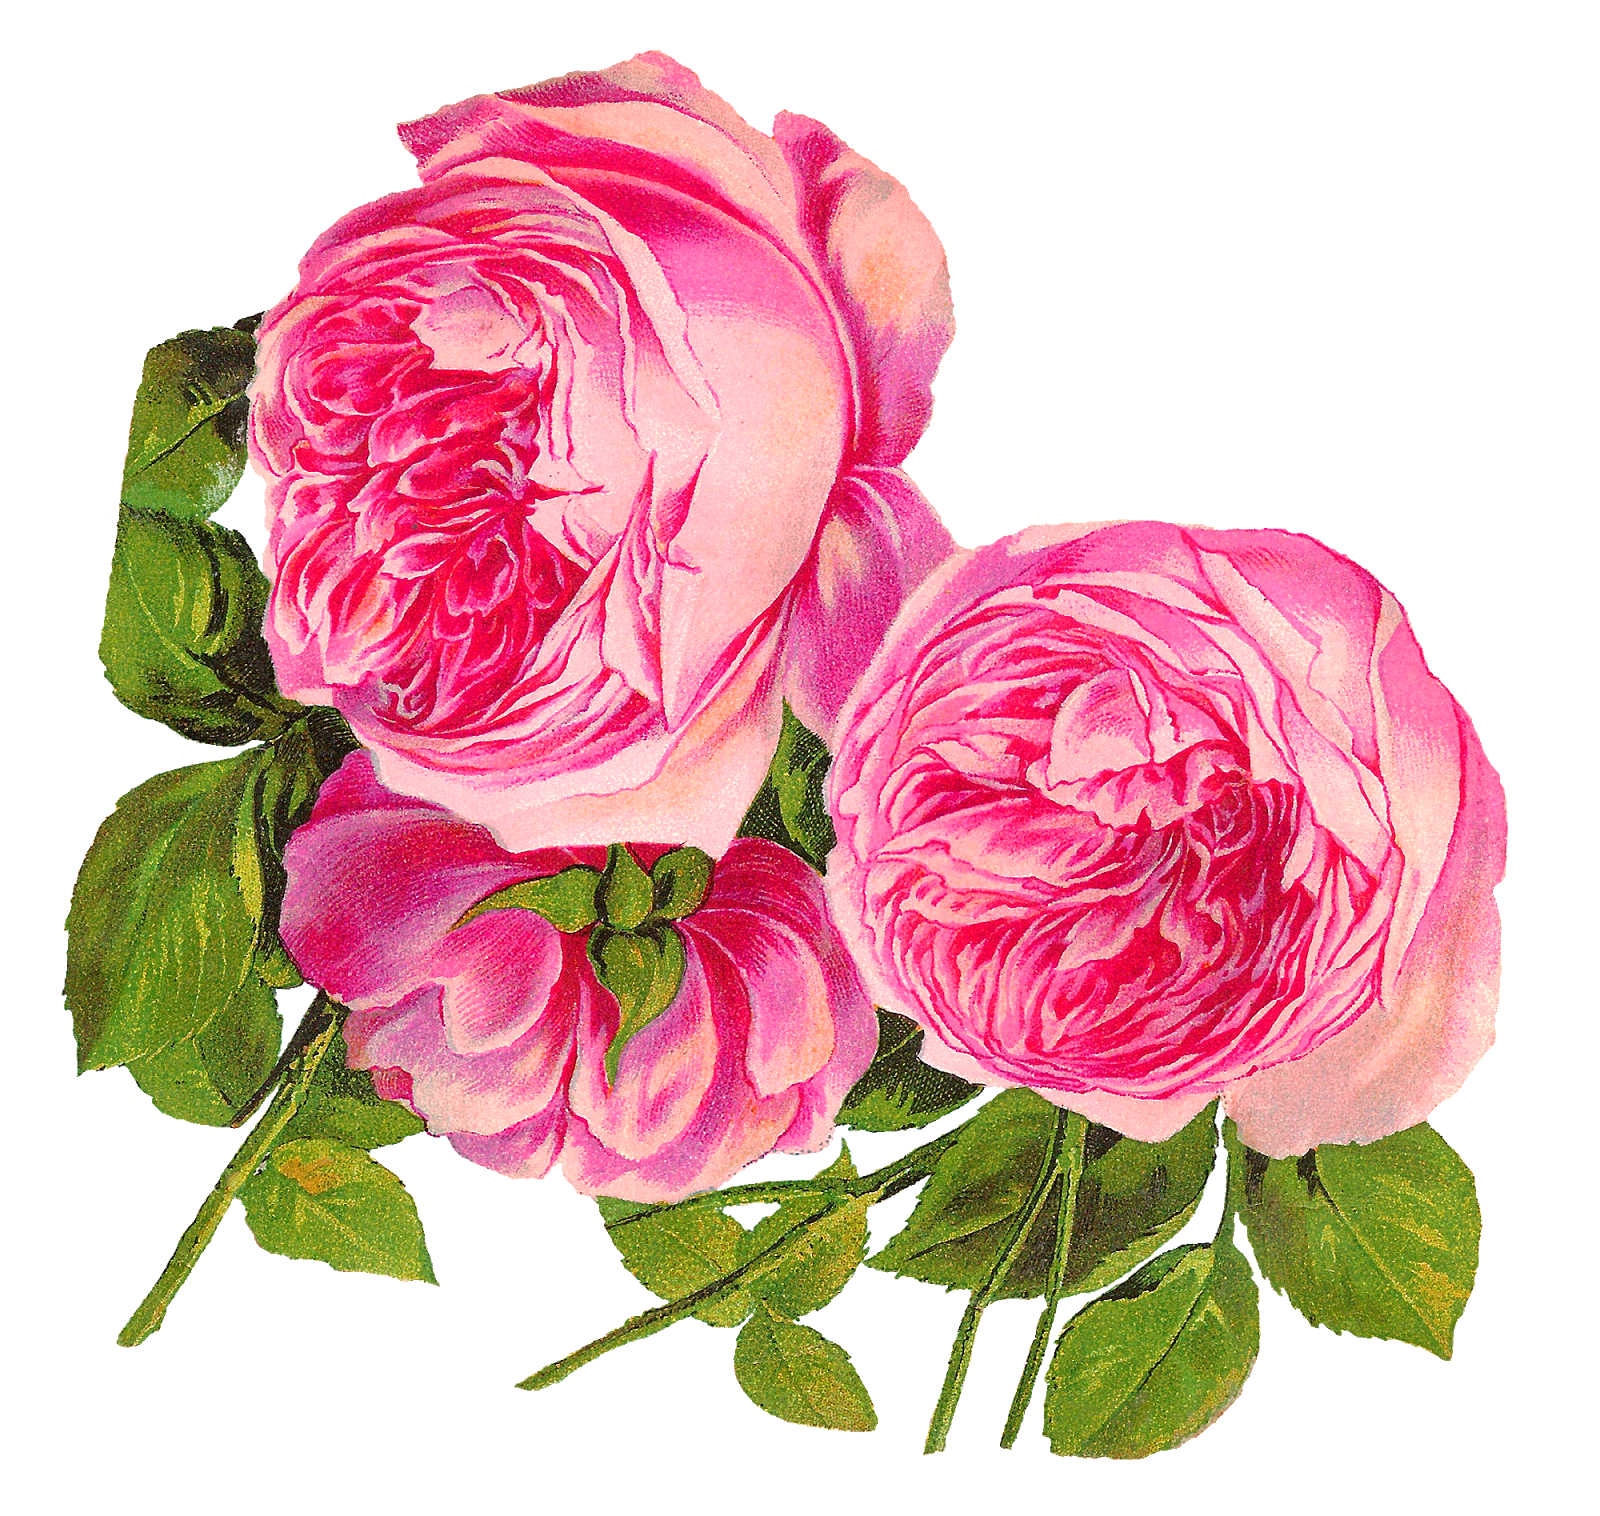 Antique images digital botanical. Clipart rose illustration